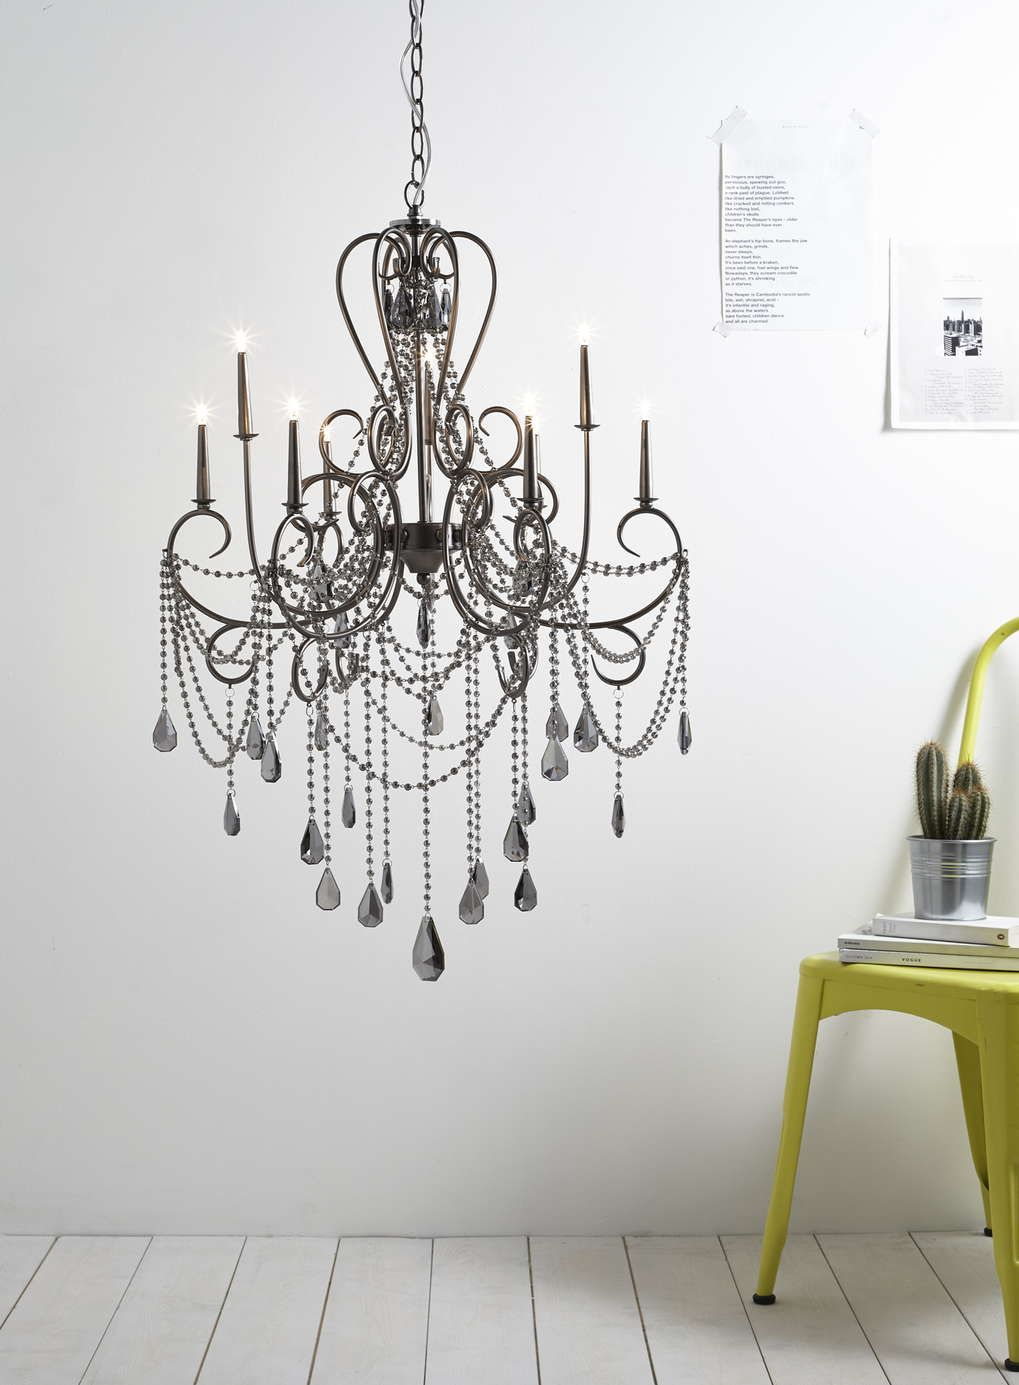 Xenia chandelier light bhs living room pinterest bhs xenia chandelier light bhs aloadofball Image collections